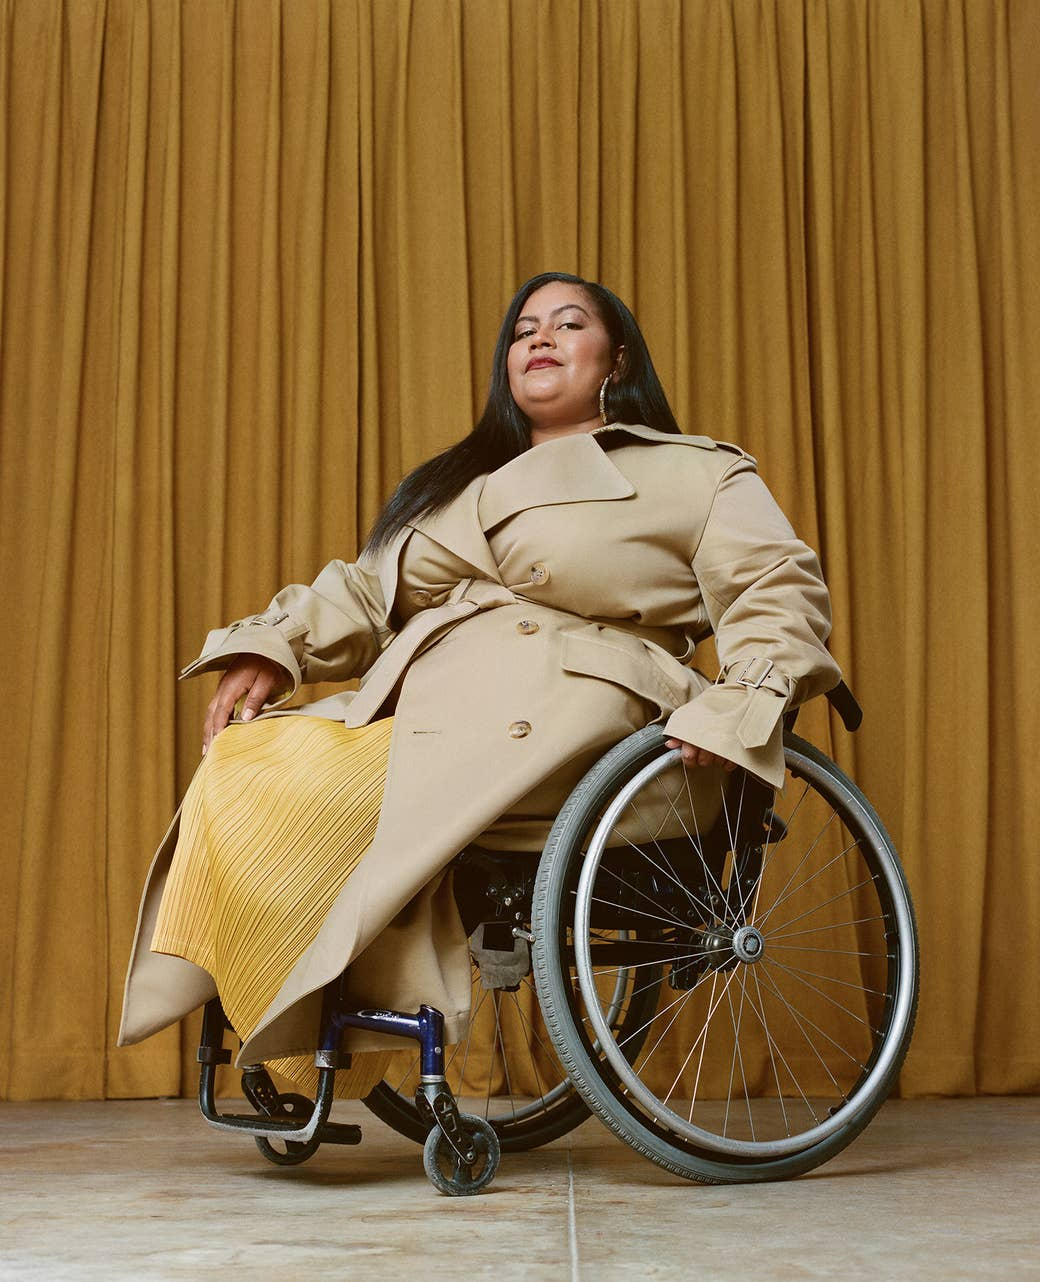 A woman in a trenchcoat and a wheelchair poses for a portrait